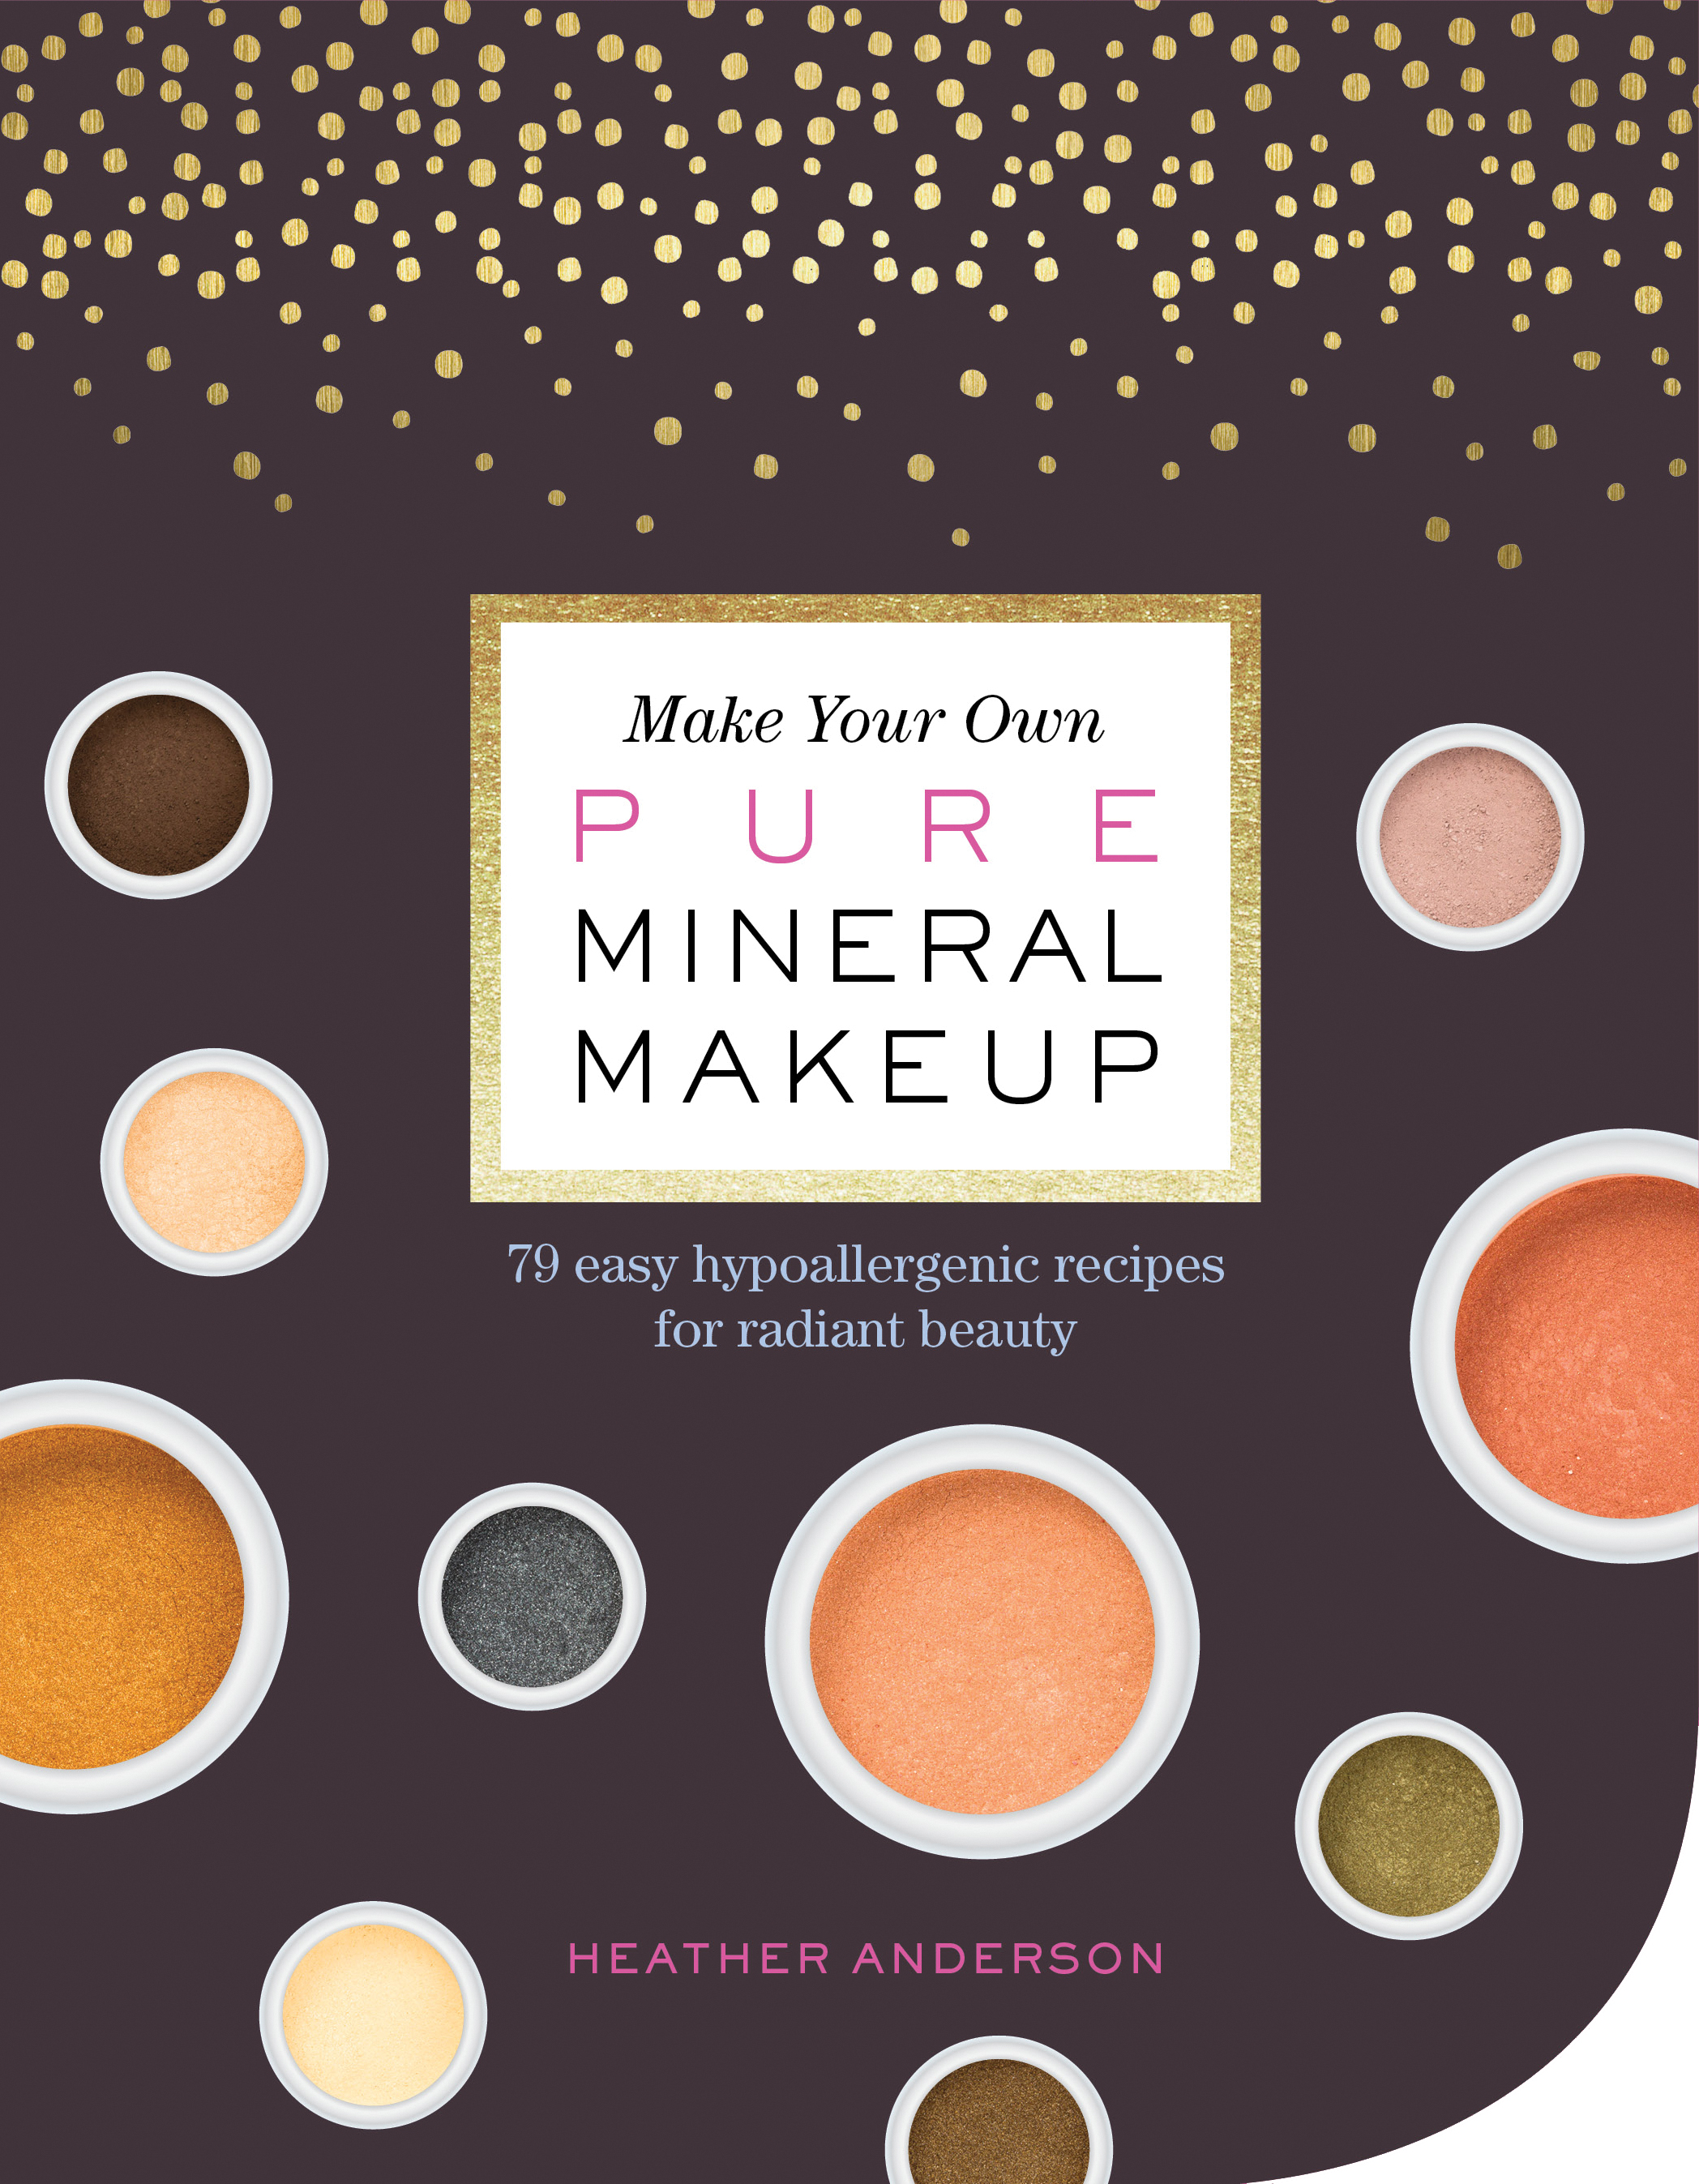 Make Your Own Pure Mineral Makeup 79 Easy Hypoallergenic Recipes for Radiant Beauty - Heather Anderson